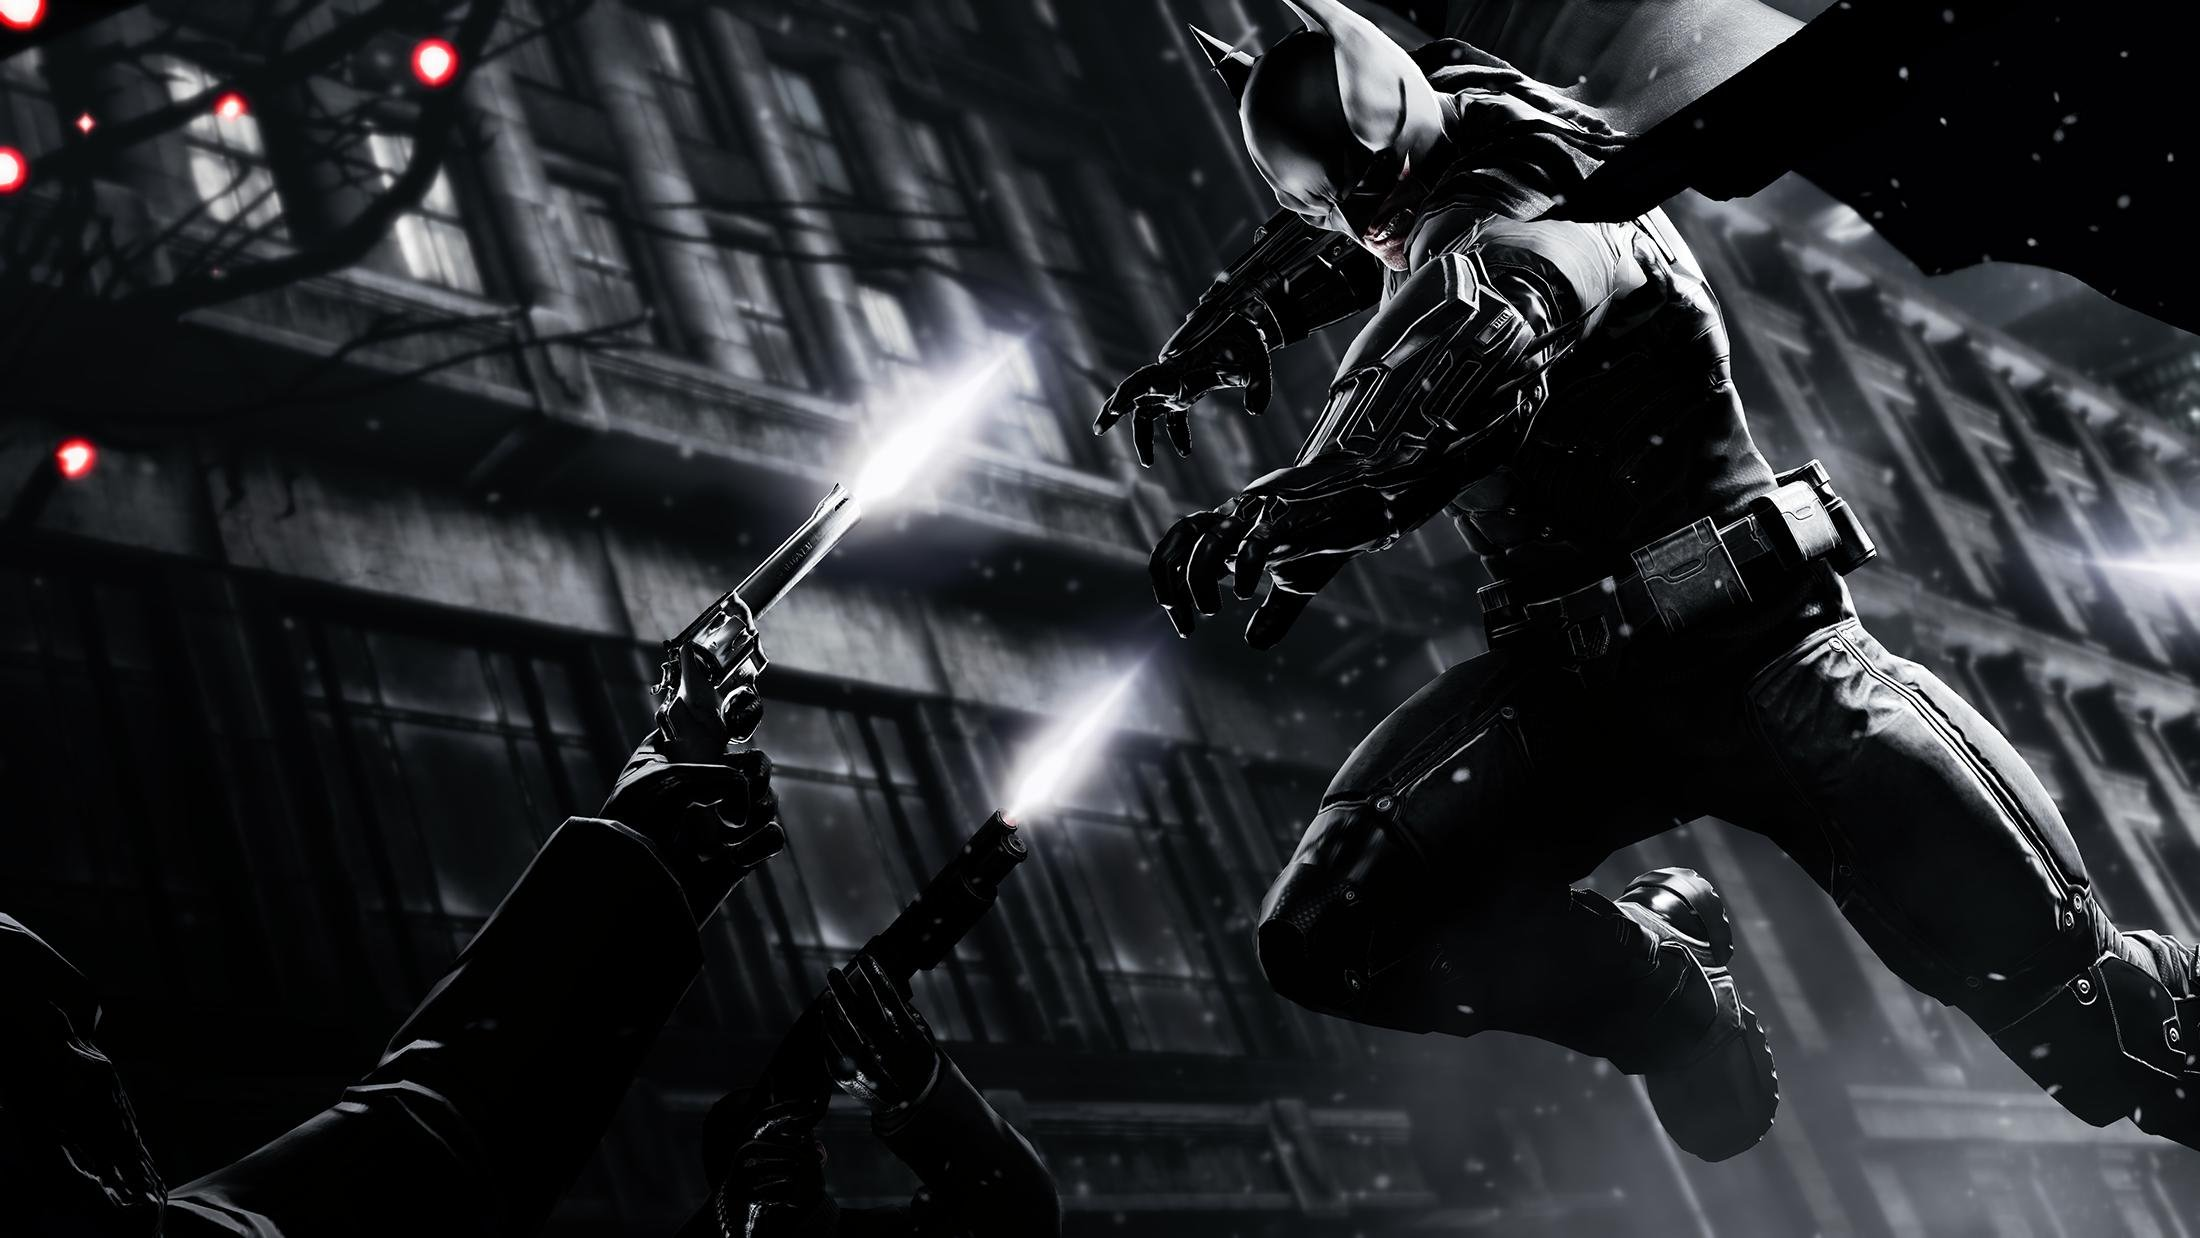 Batman arkham origins wallpaper - SF Wallpaper e9aefdb8f4a